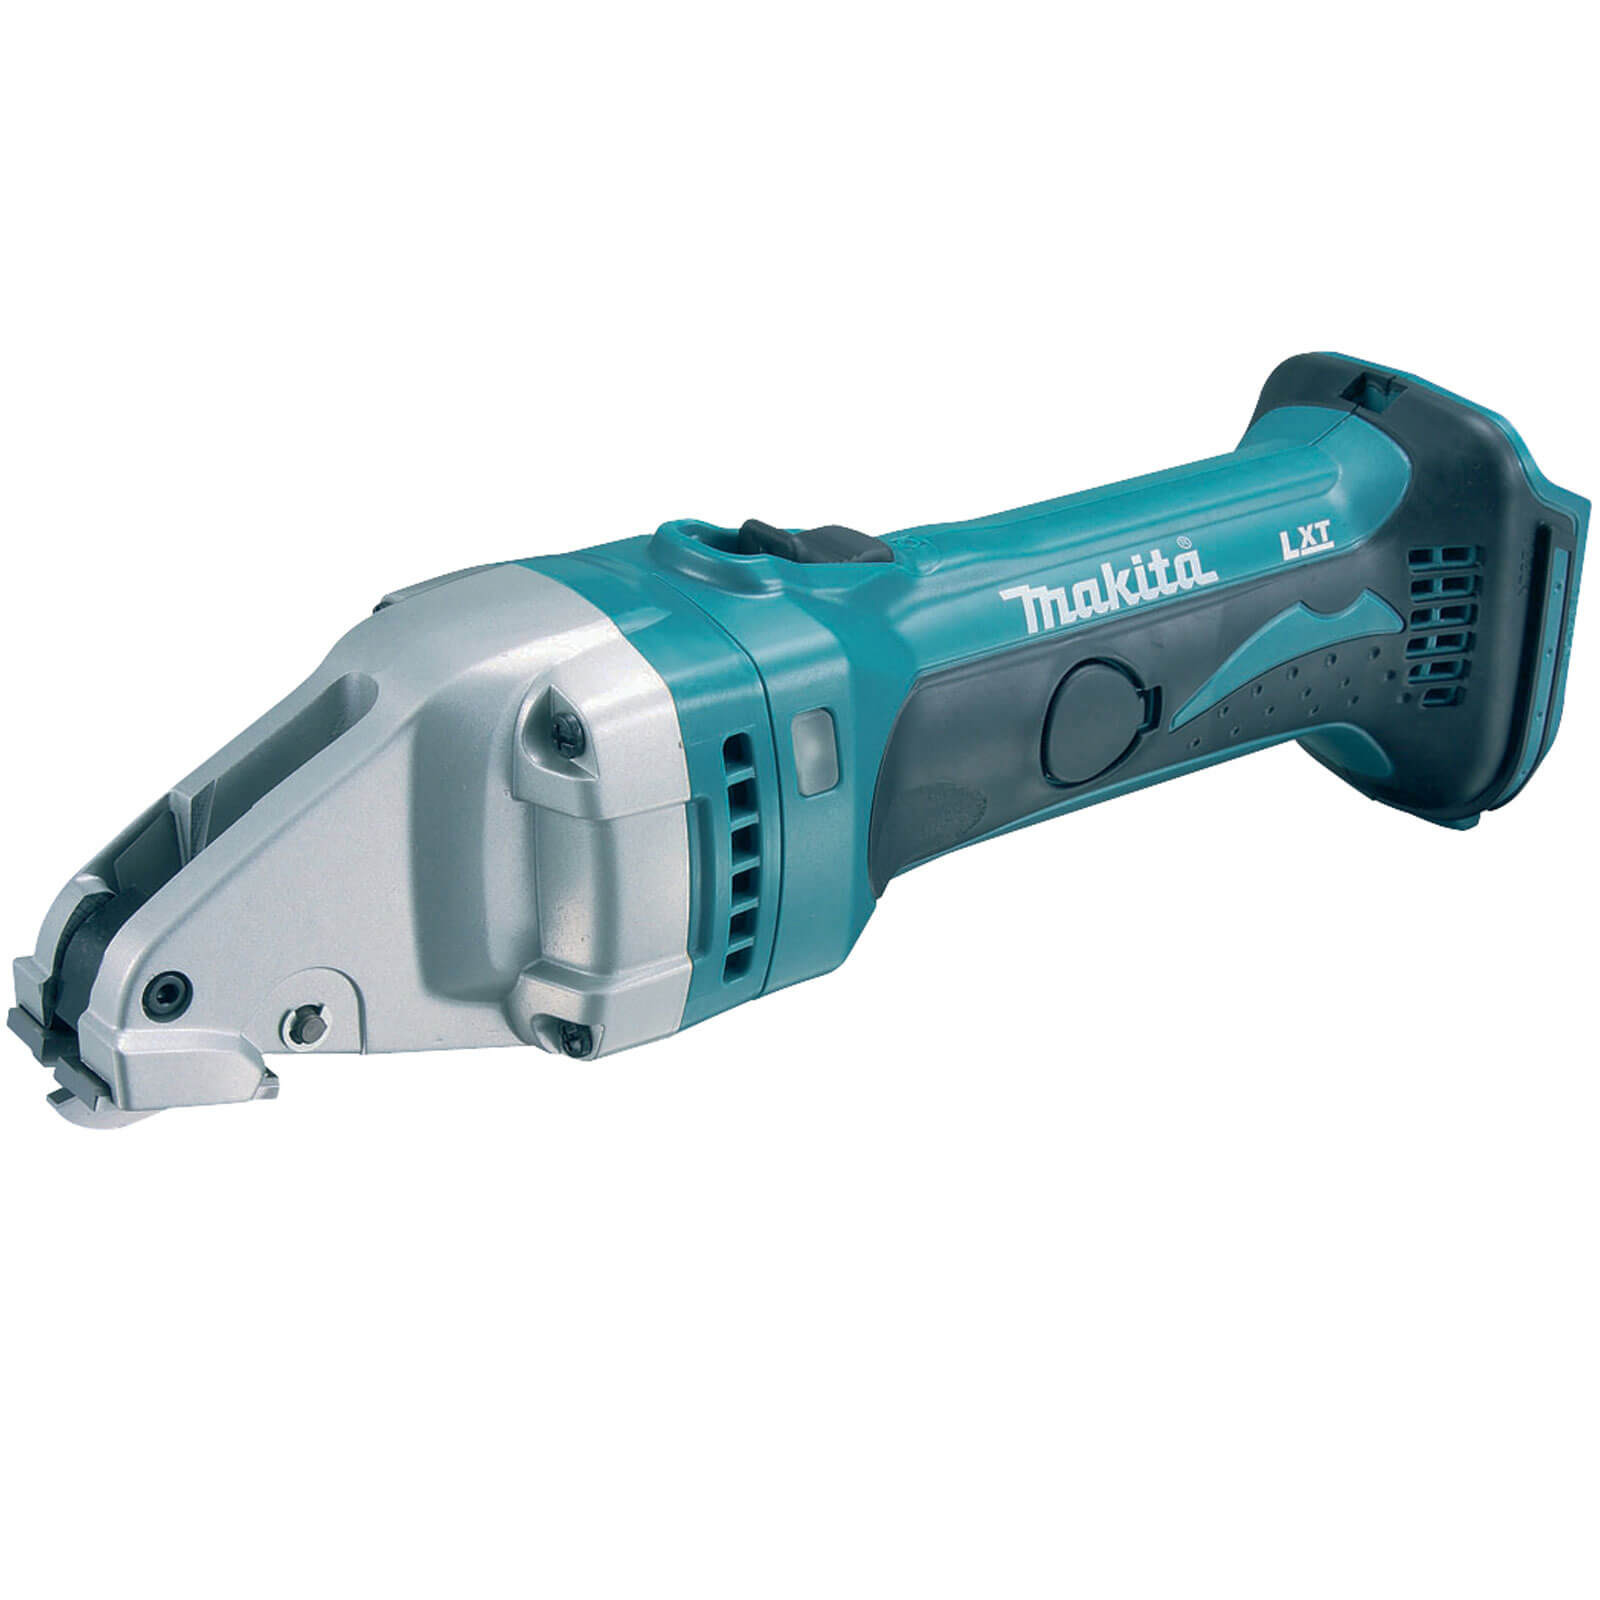 Buy Cheap Makita Lxt Compare Power Tools Prices For Best Uk Deals